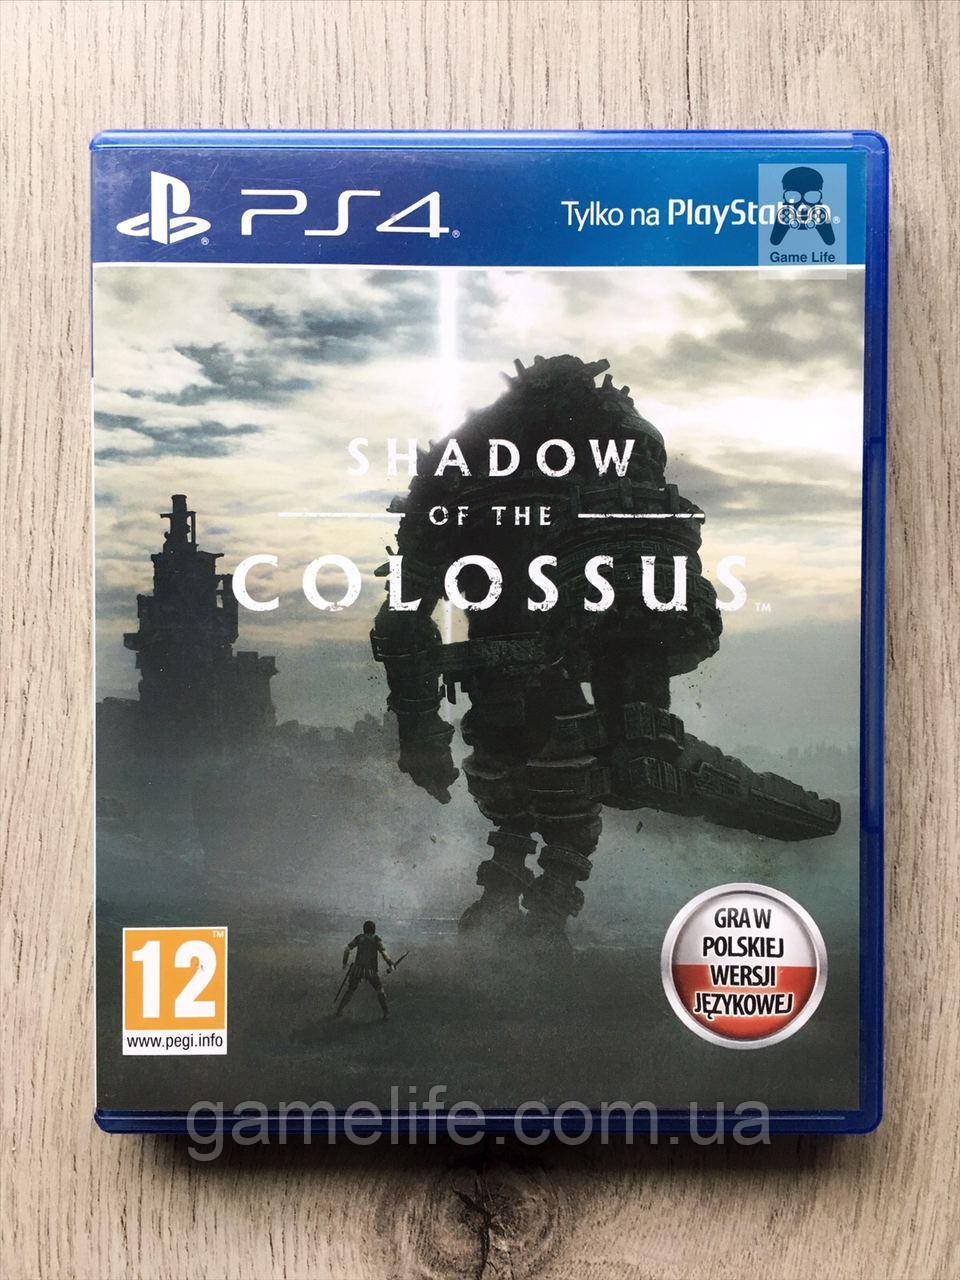 Shadow of the Colossus (русские субтитры) (б/у) PS4